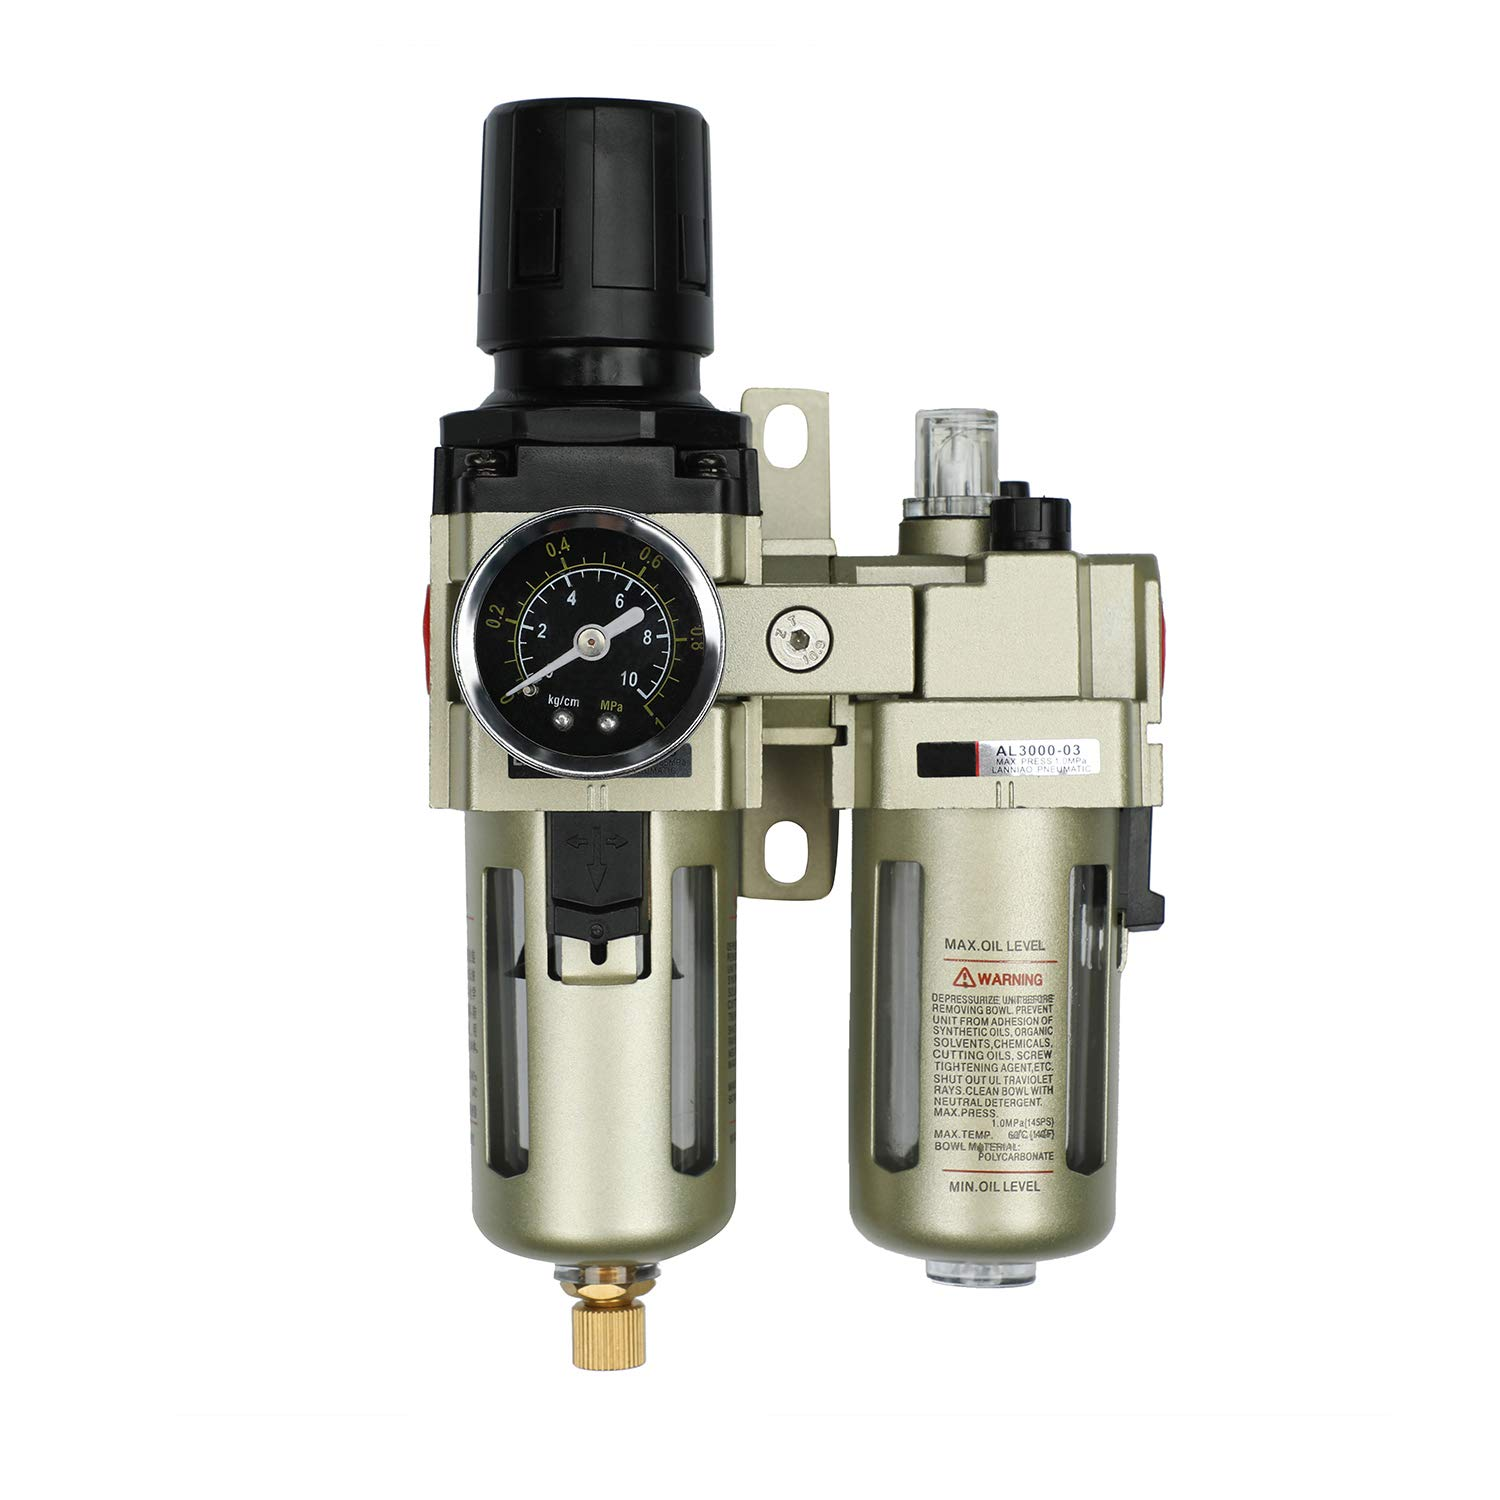 Compressed Air Filter Regulator Lubricator Combo with Gauge 1/4' NPT Poly Cup with Aluminum Alloy Cover, Manual Drain, 5 μm